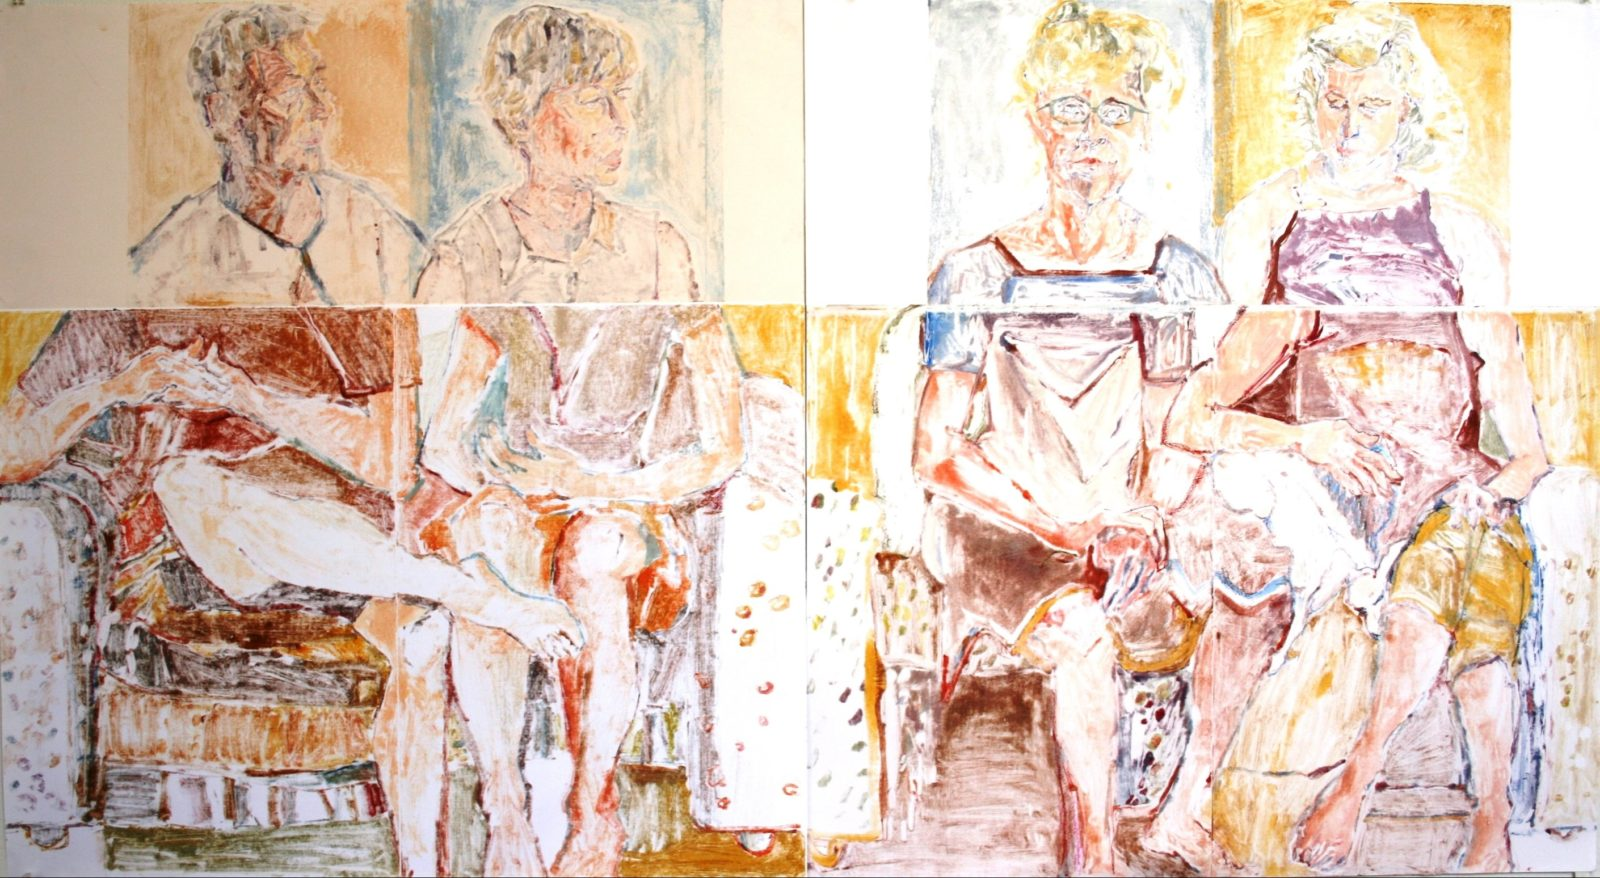 This is The Family Lounge, the painting that won the last Basil Sellers Prize in the Eurobodalla. It was painted by Susan Chancellor